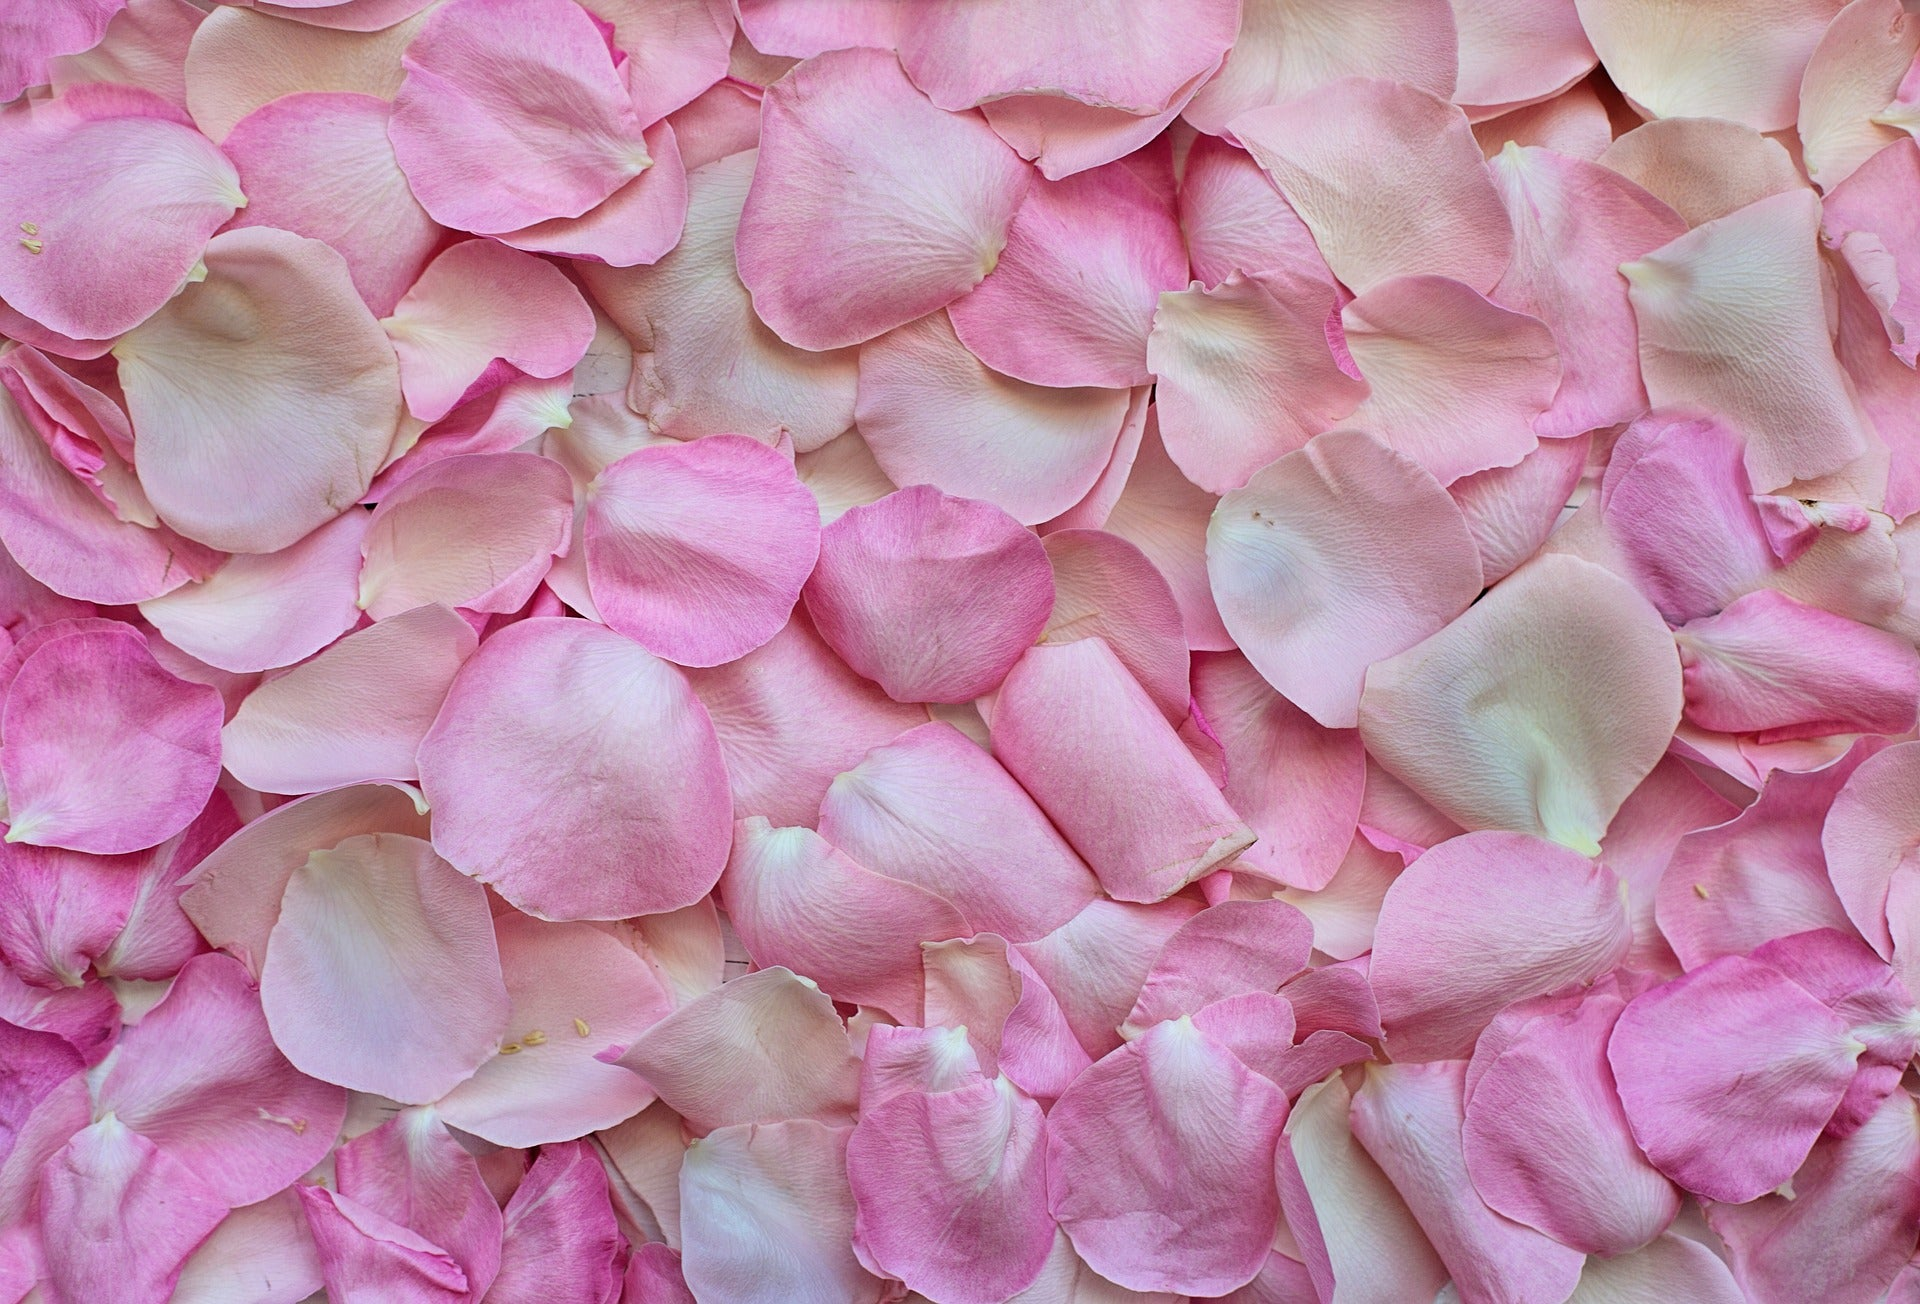 Harvesting petals to make Rose absolute oil